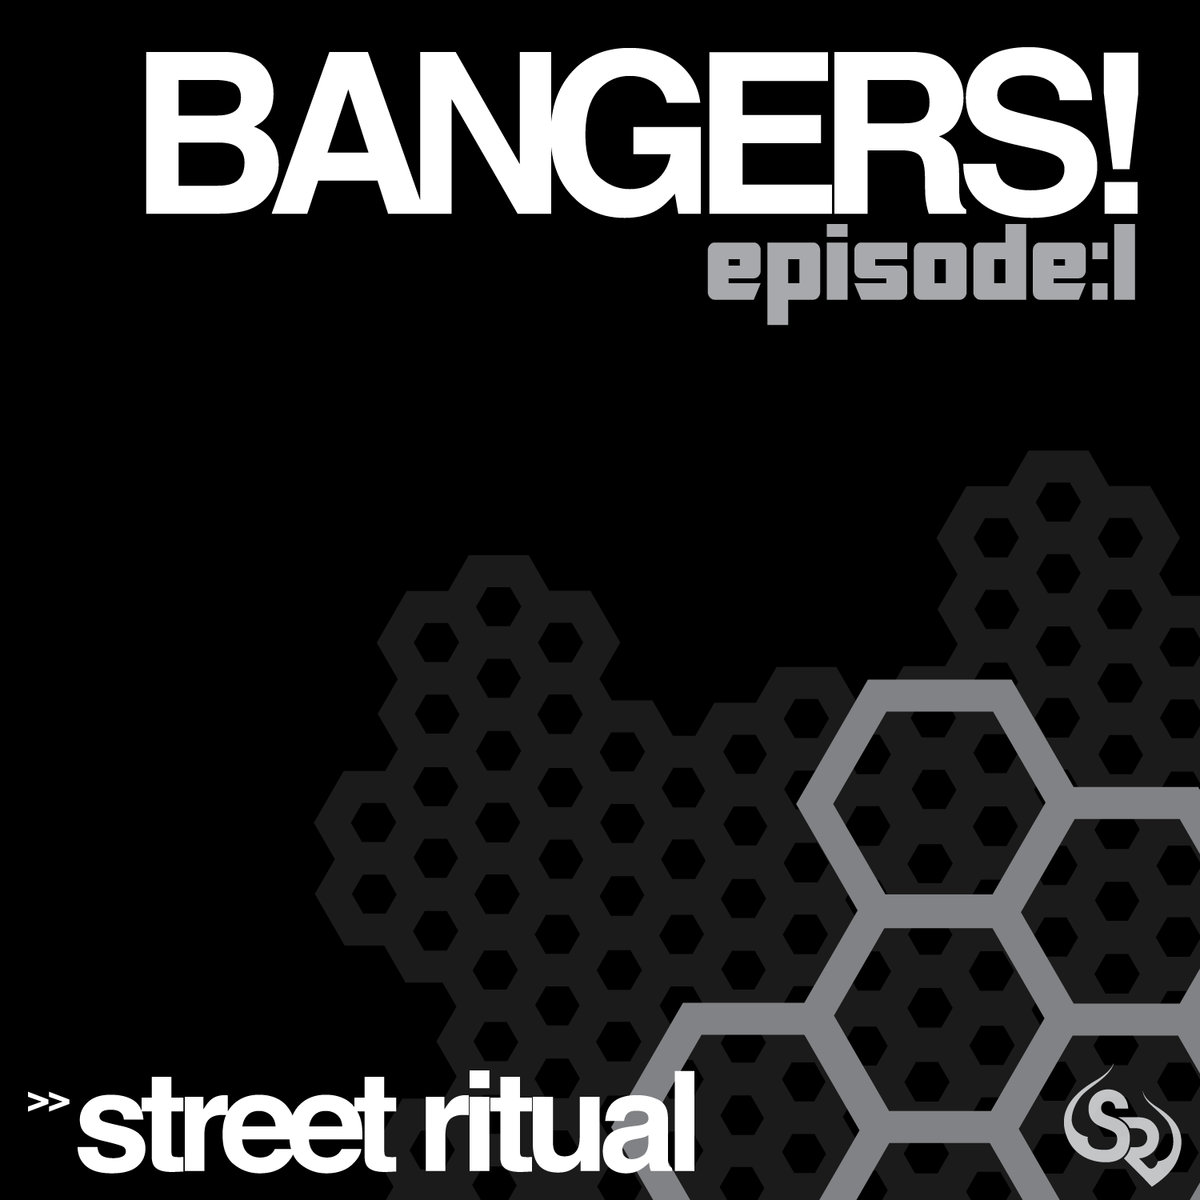 Conscious Kalling - Three Irised Eye @ 'Various Artists - Bangers! Episode:1' album (bass, electronic)